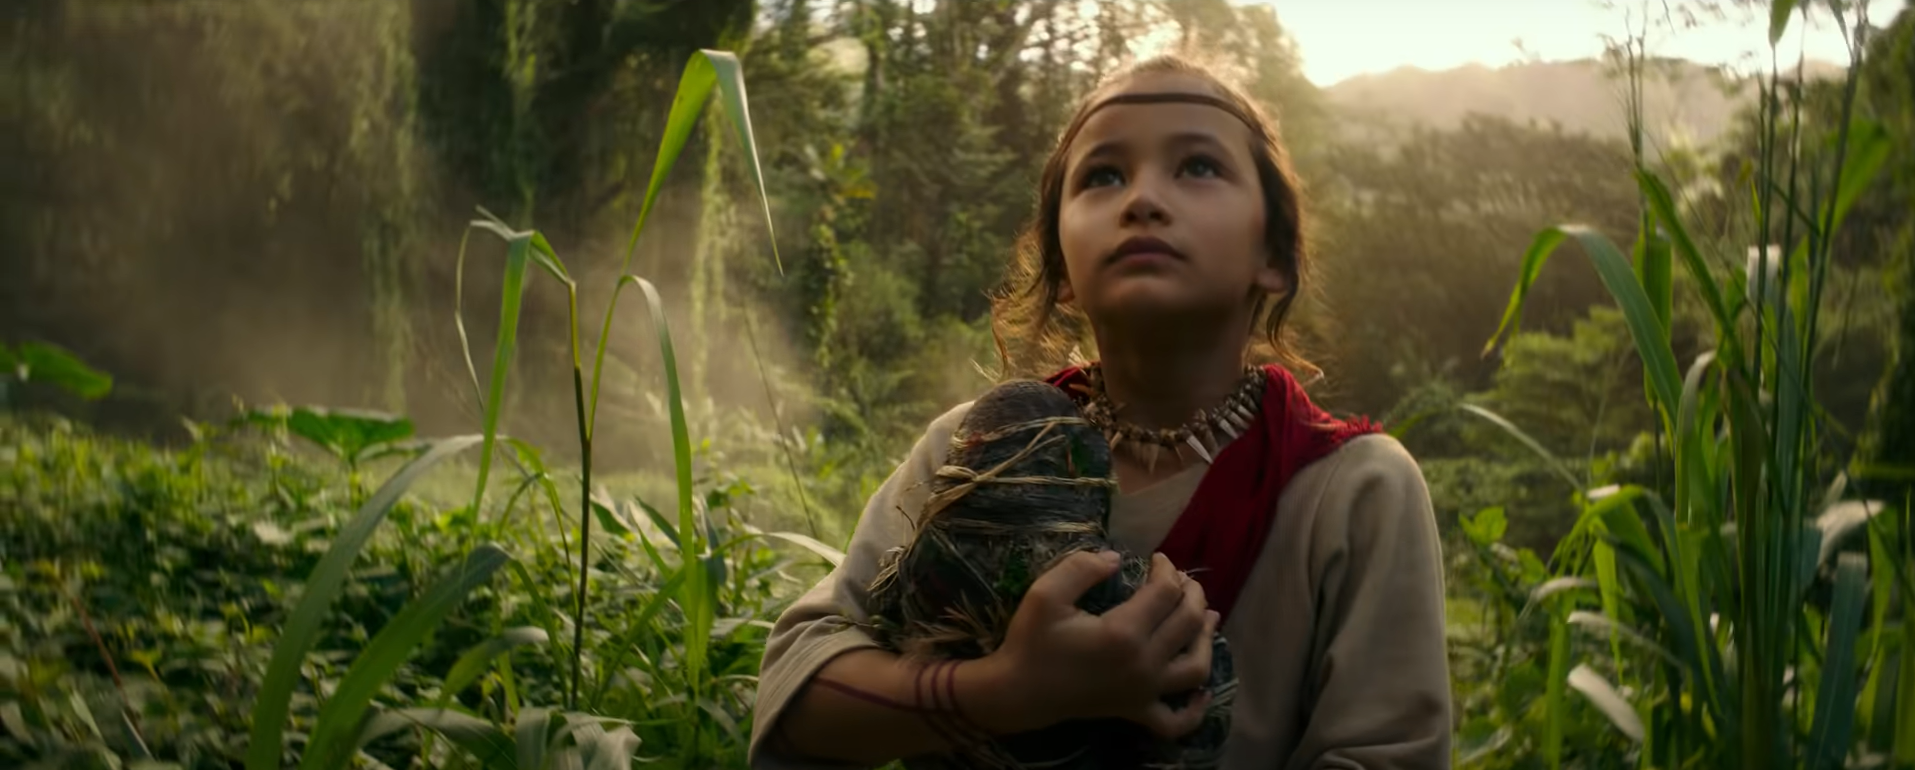 Jia (Kaylee Hottle), a young Indigenous girl holding a homemade Kong doll, stands in a jungle.